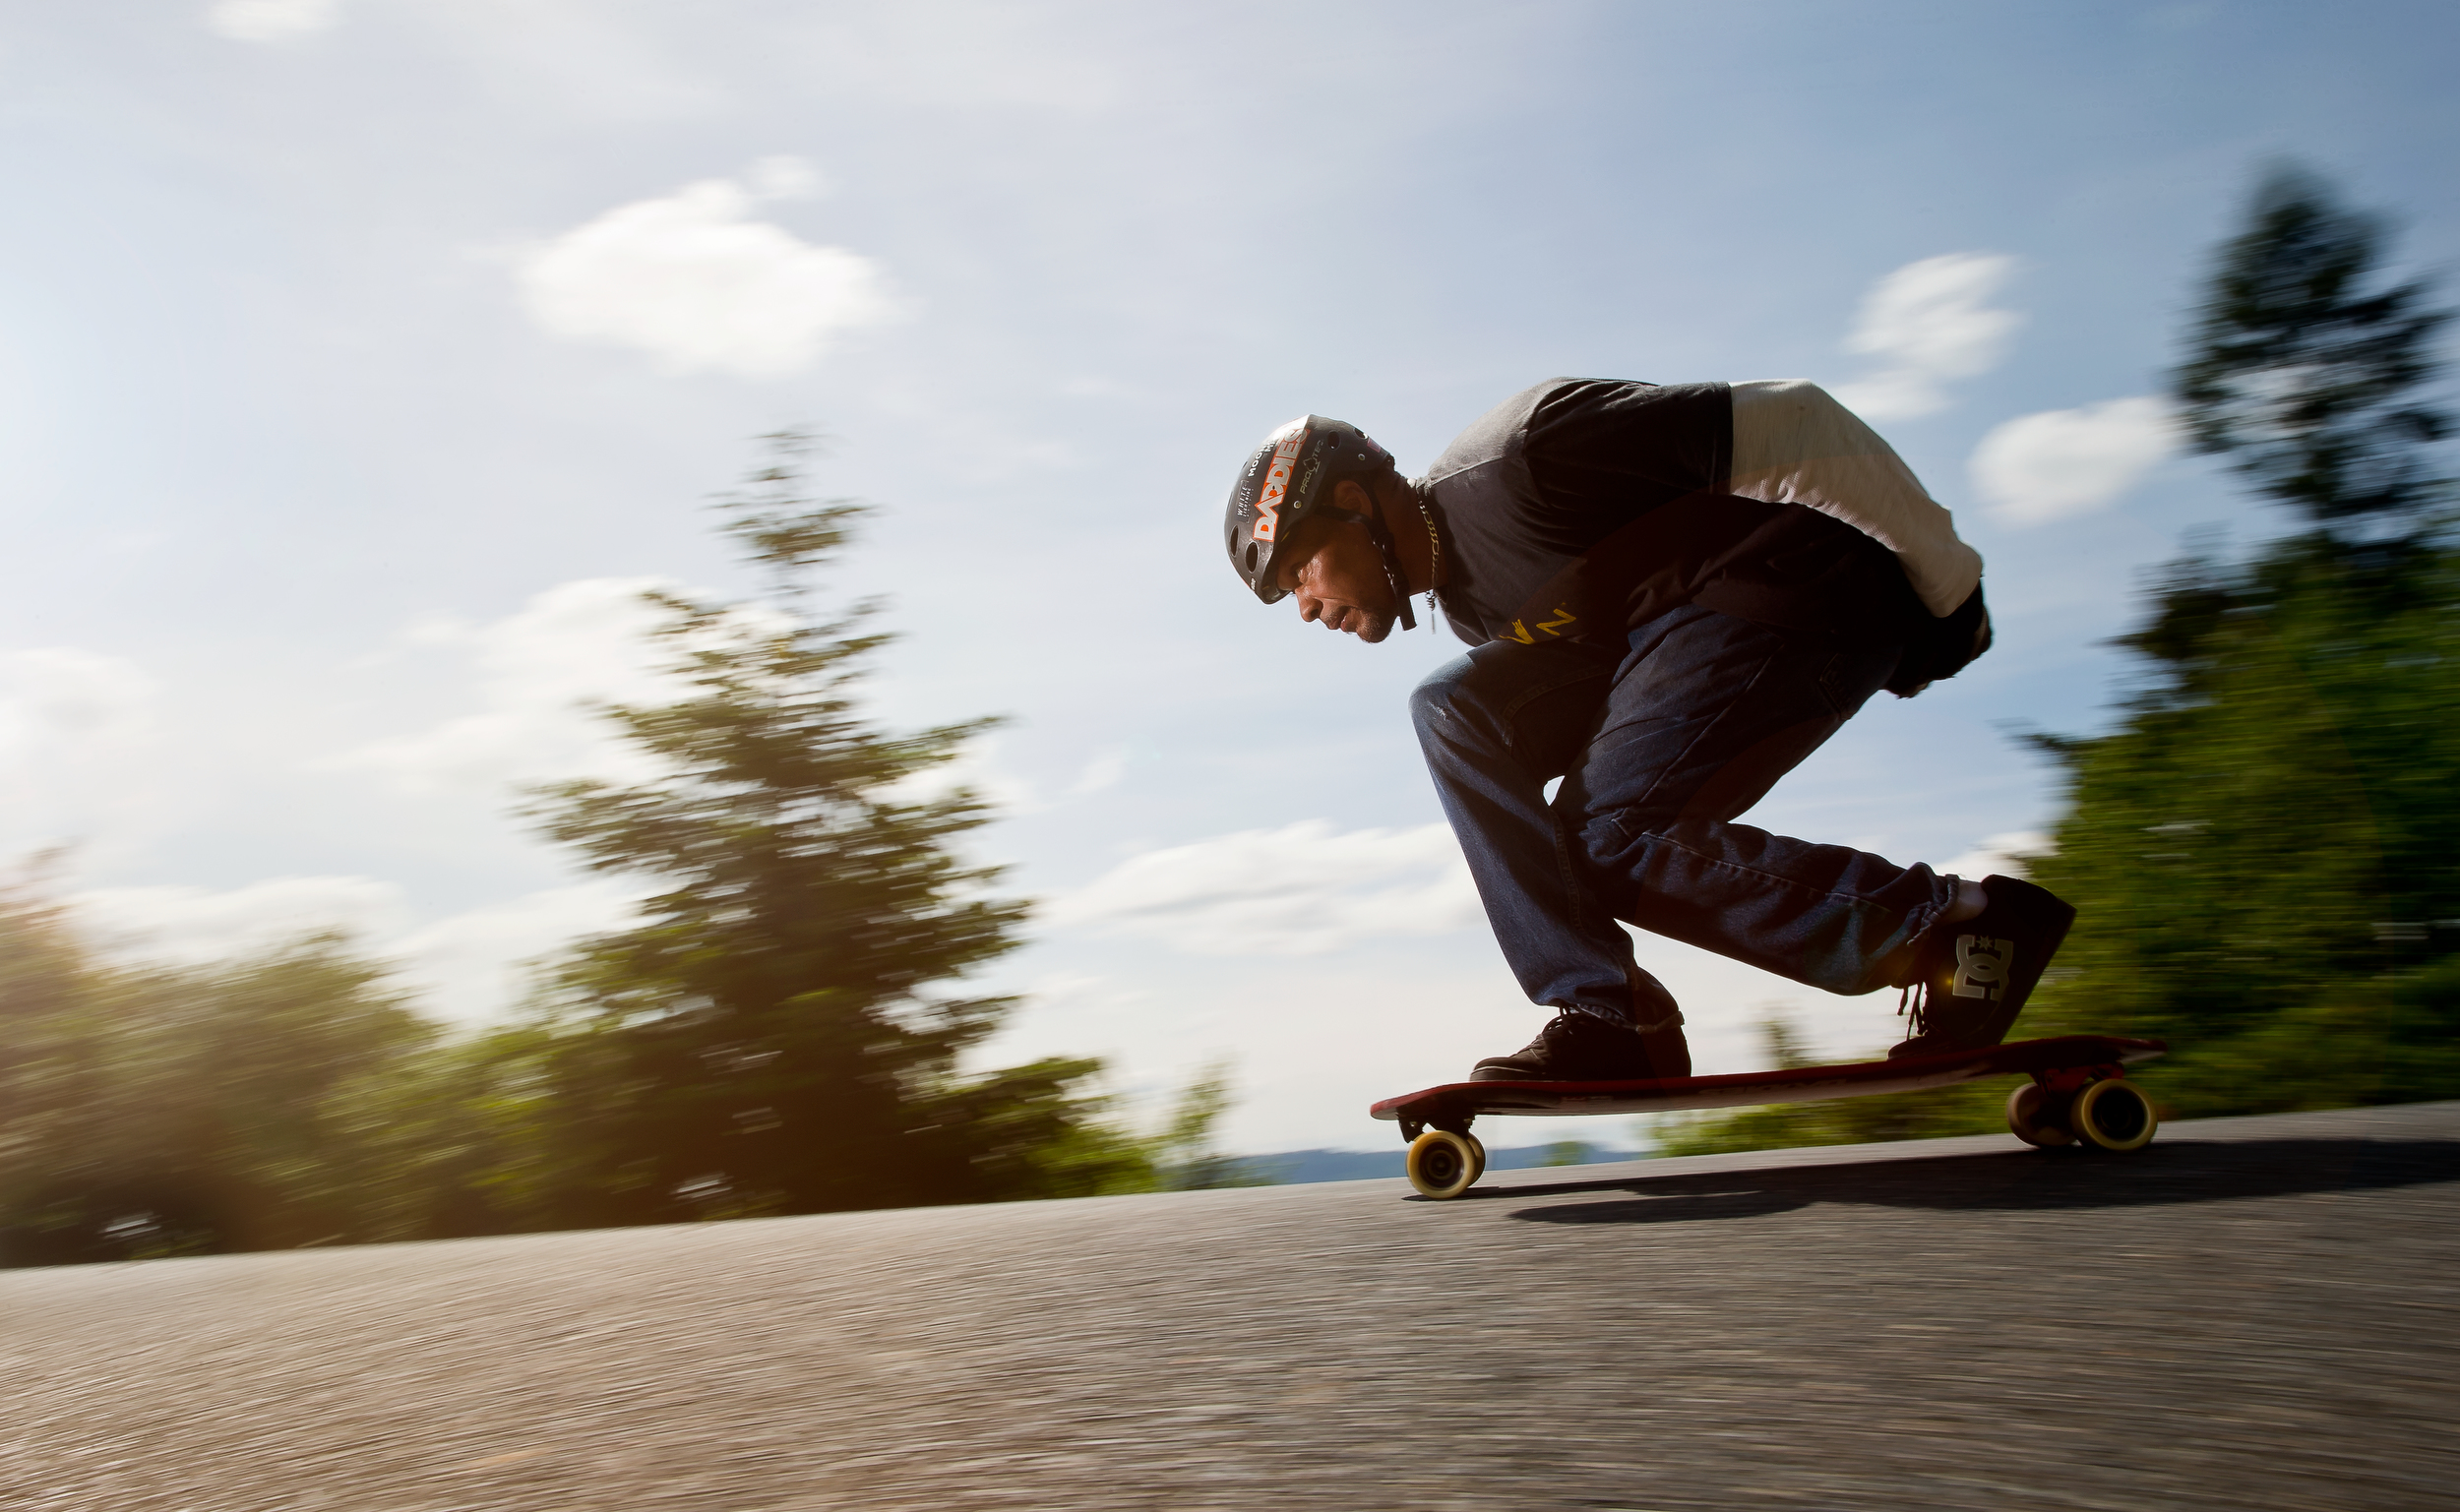 Daron Horwitz, president of Daddies Board Shop, takes his longboard for a ride on Mt. Tabor, Portland Oregon.